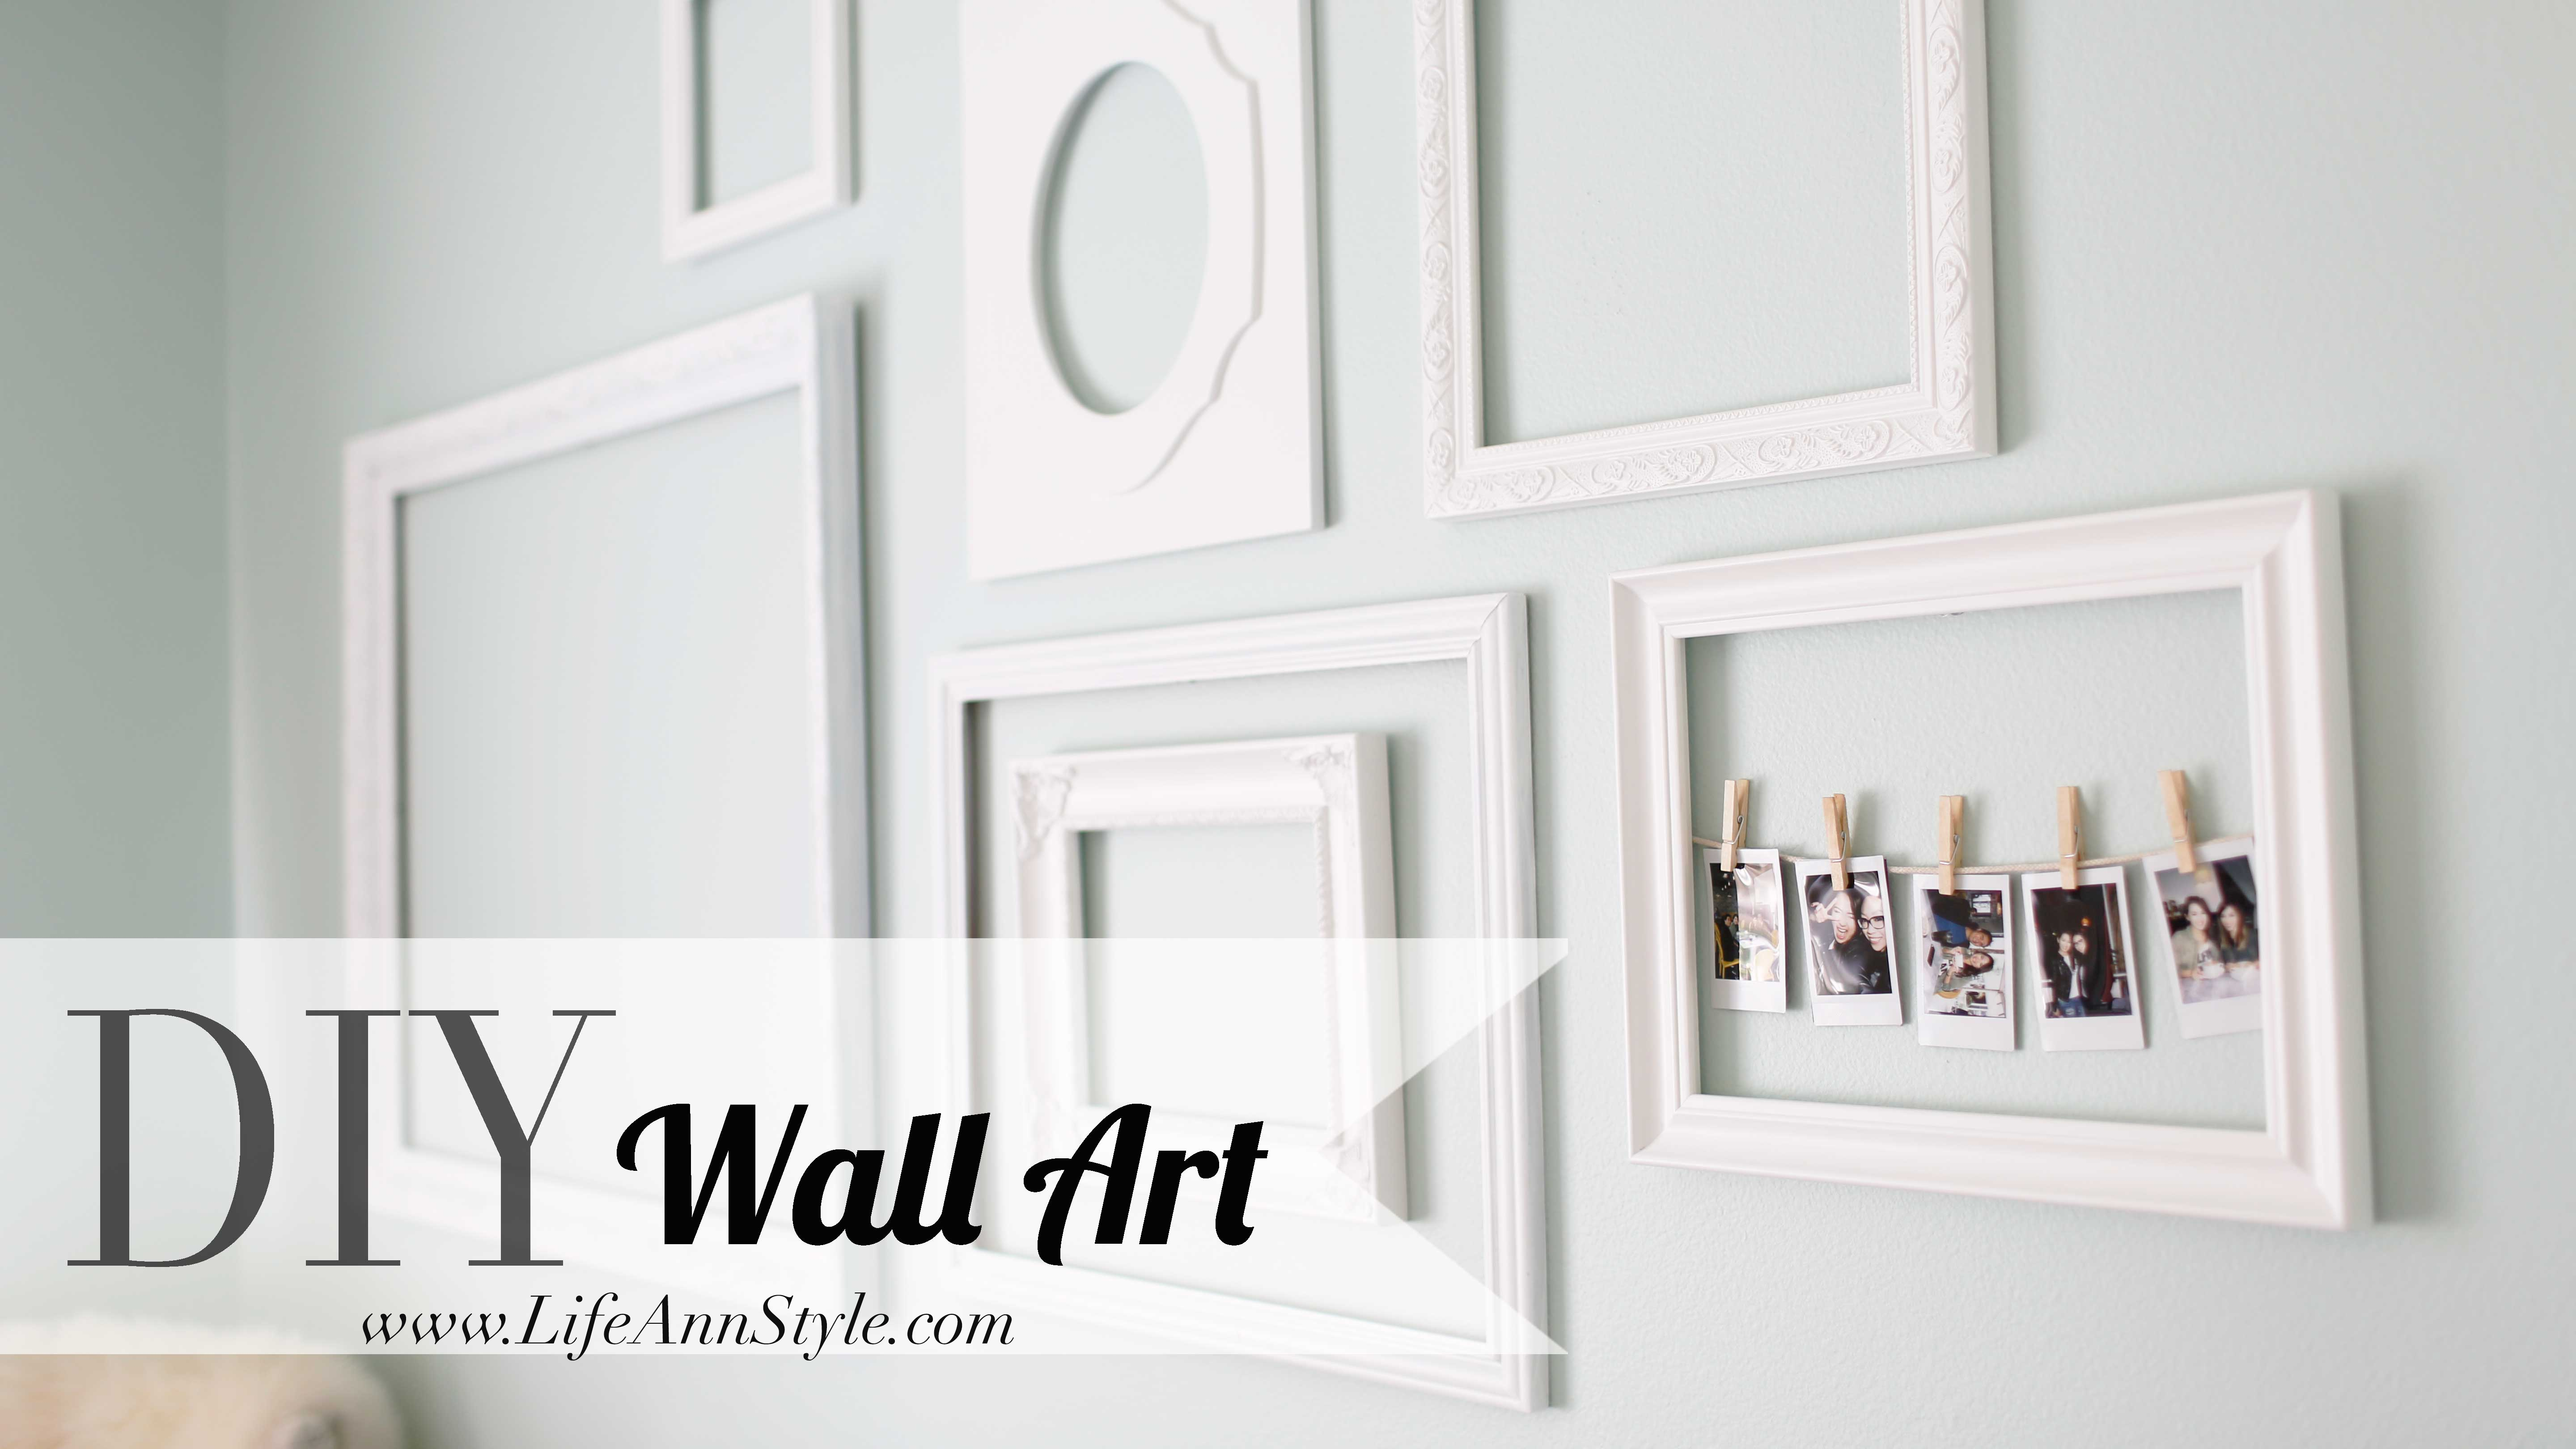 Wall Art Designs: Astounding Magnetic Prints White Framed Wall Art Inside Current Black And White Framed Wall Art (View 20 of 20)